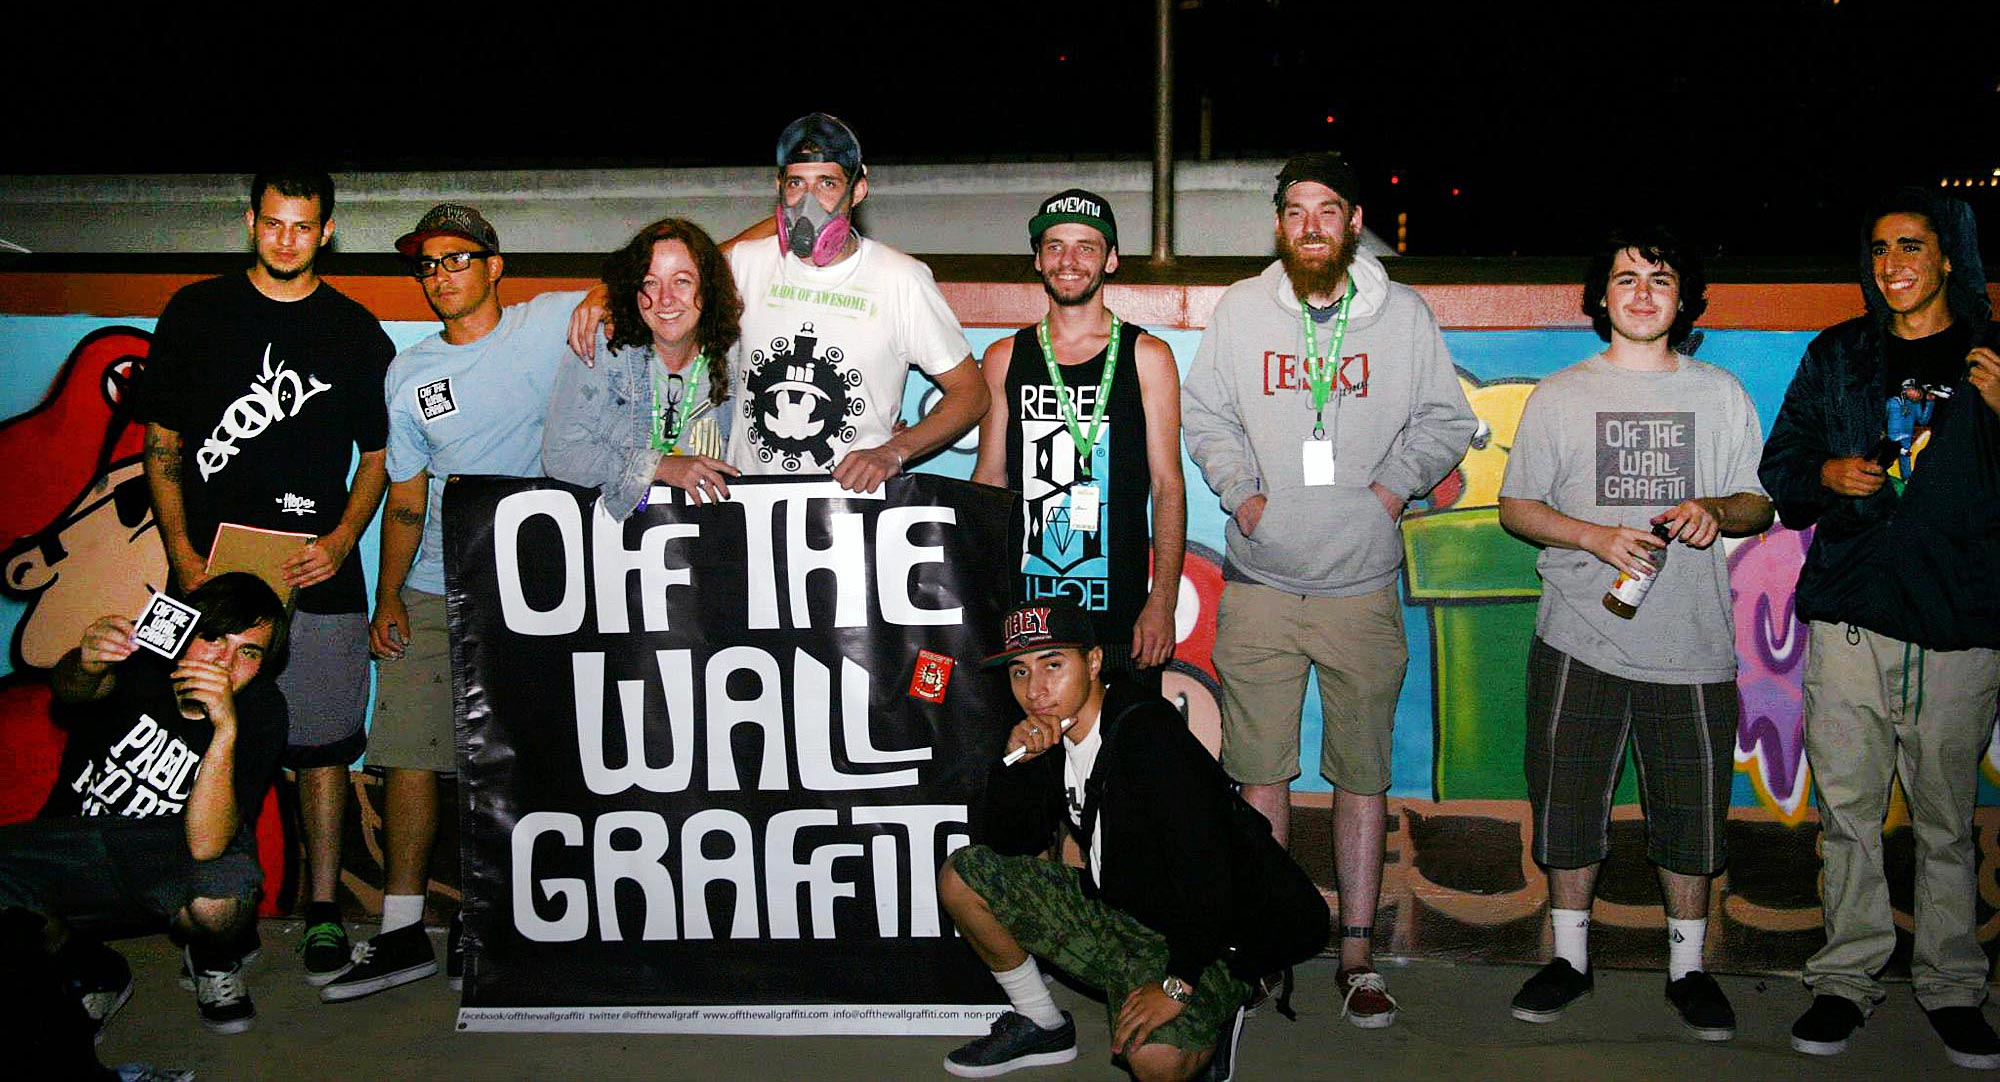 What-is-Off-the-Wall-Graffiti-About-Us